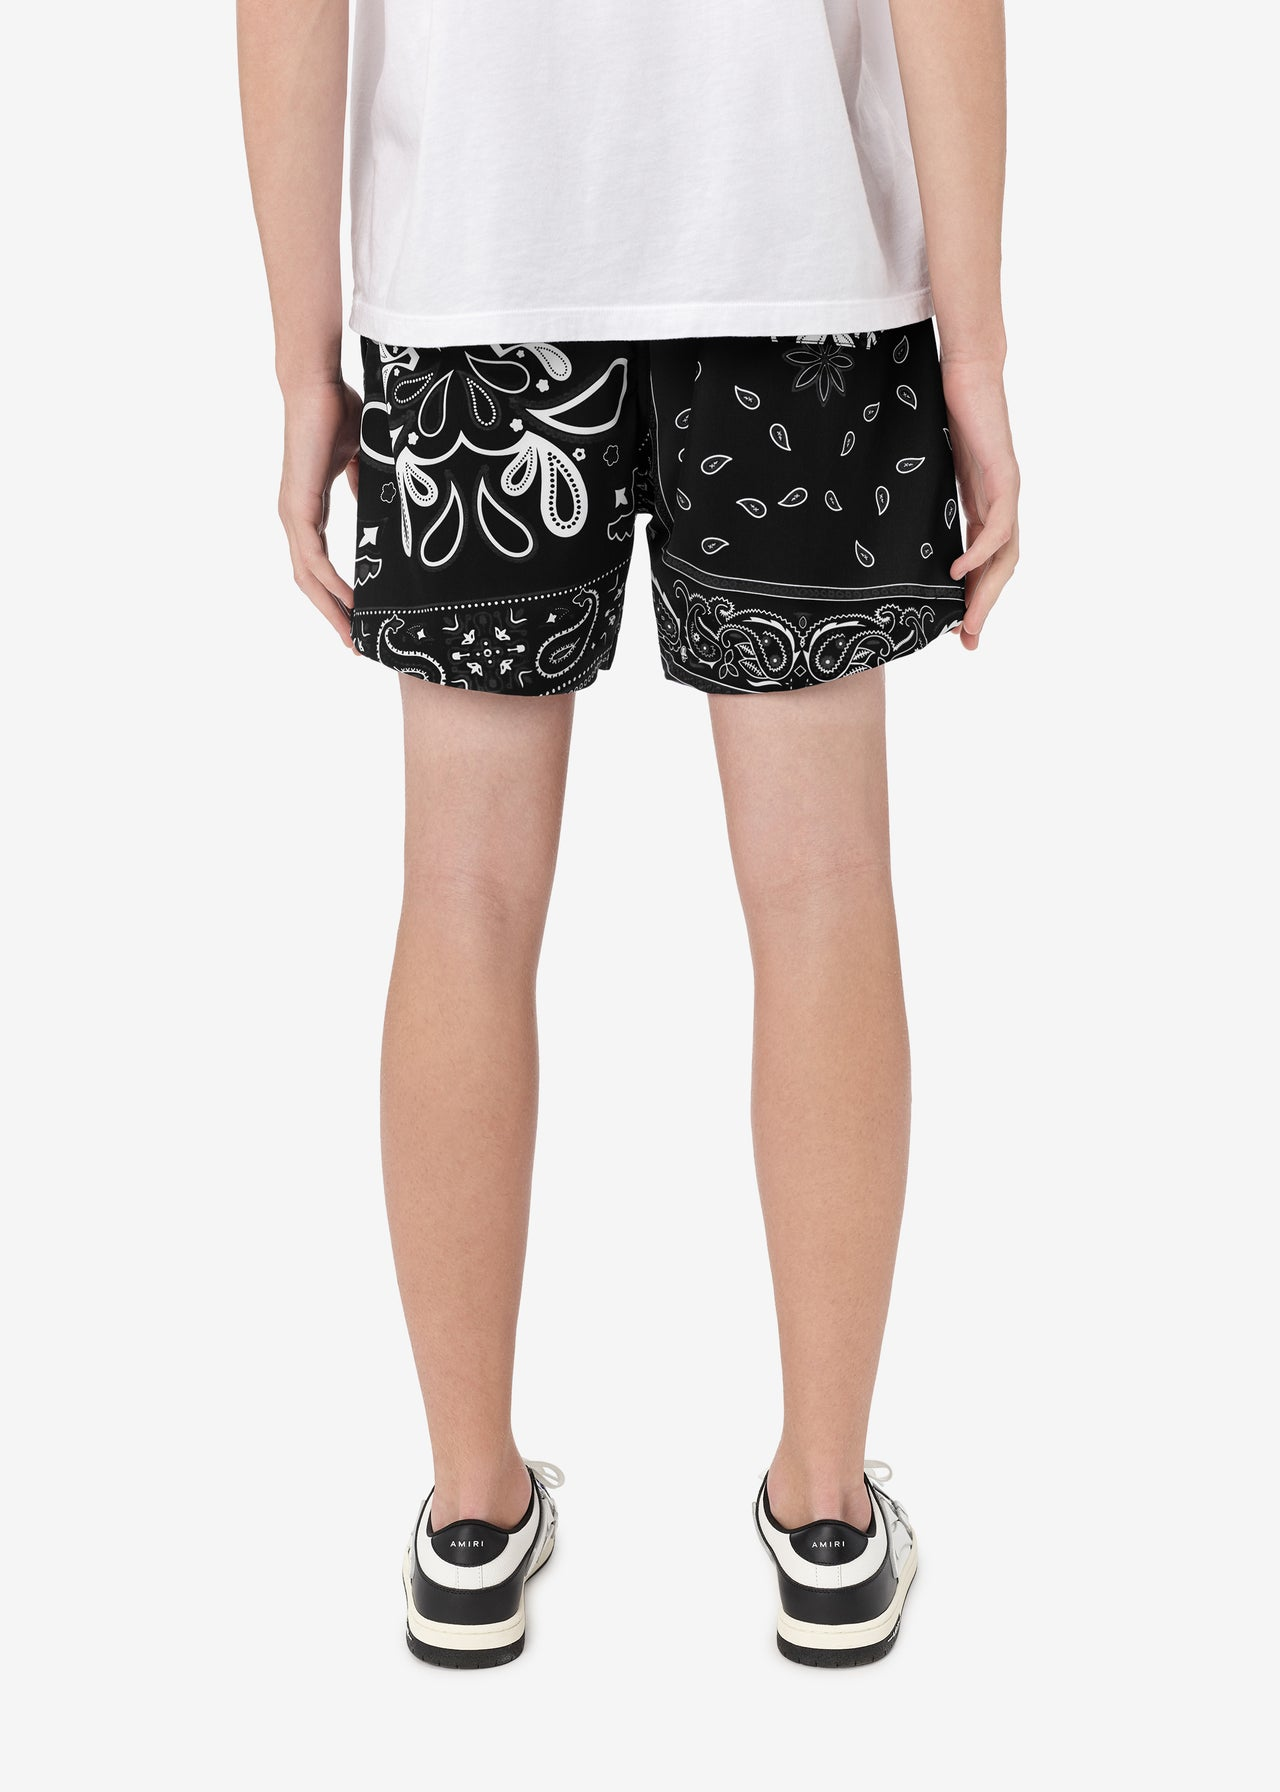 BANDANA SWIM TRUNK - BLACK